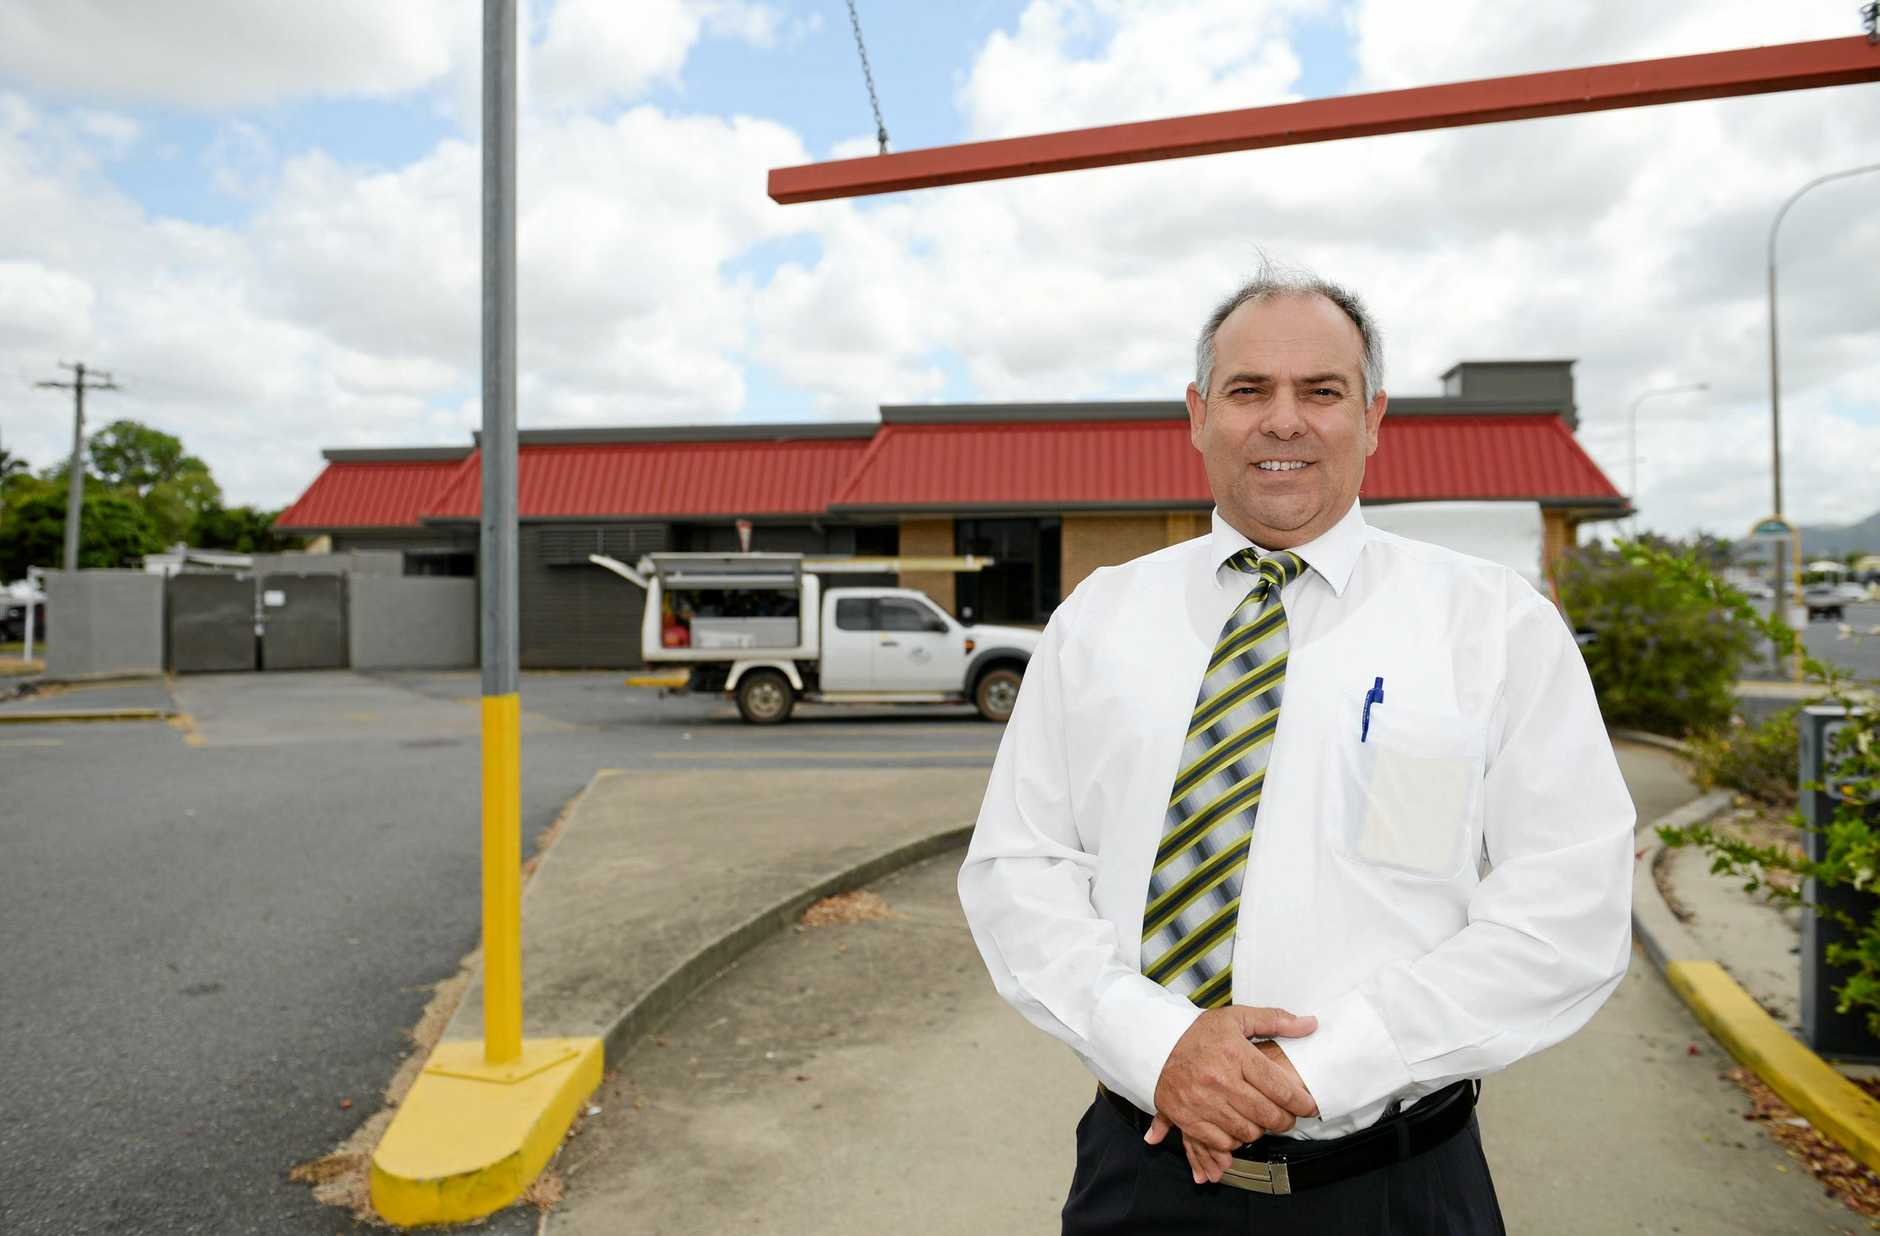 Robin McArthur on the drive thru of the old KFC on Queen Elizabeth Drive that is being turned into a Subway store. Photo Allan Reinikka / The Morning Bulletin